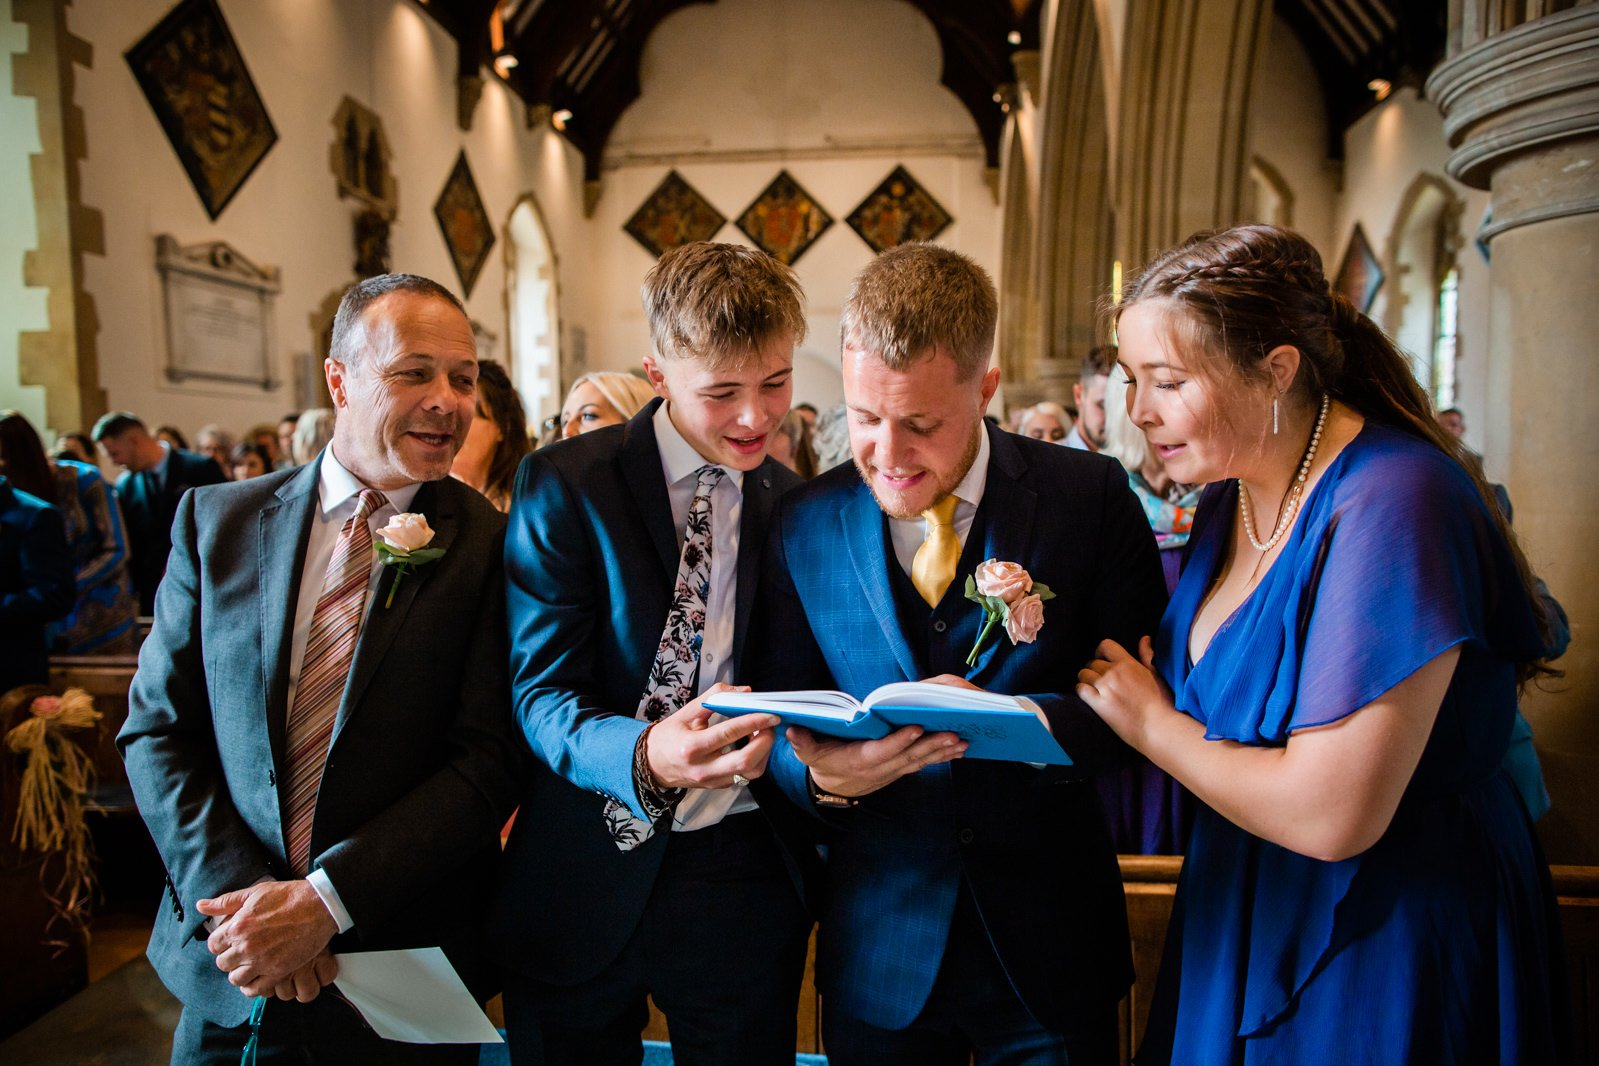 The Elephant Pangbourne Wedding - Stunning Kayleigh & Shane 34